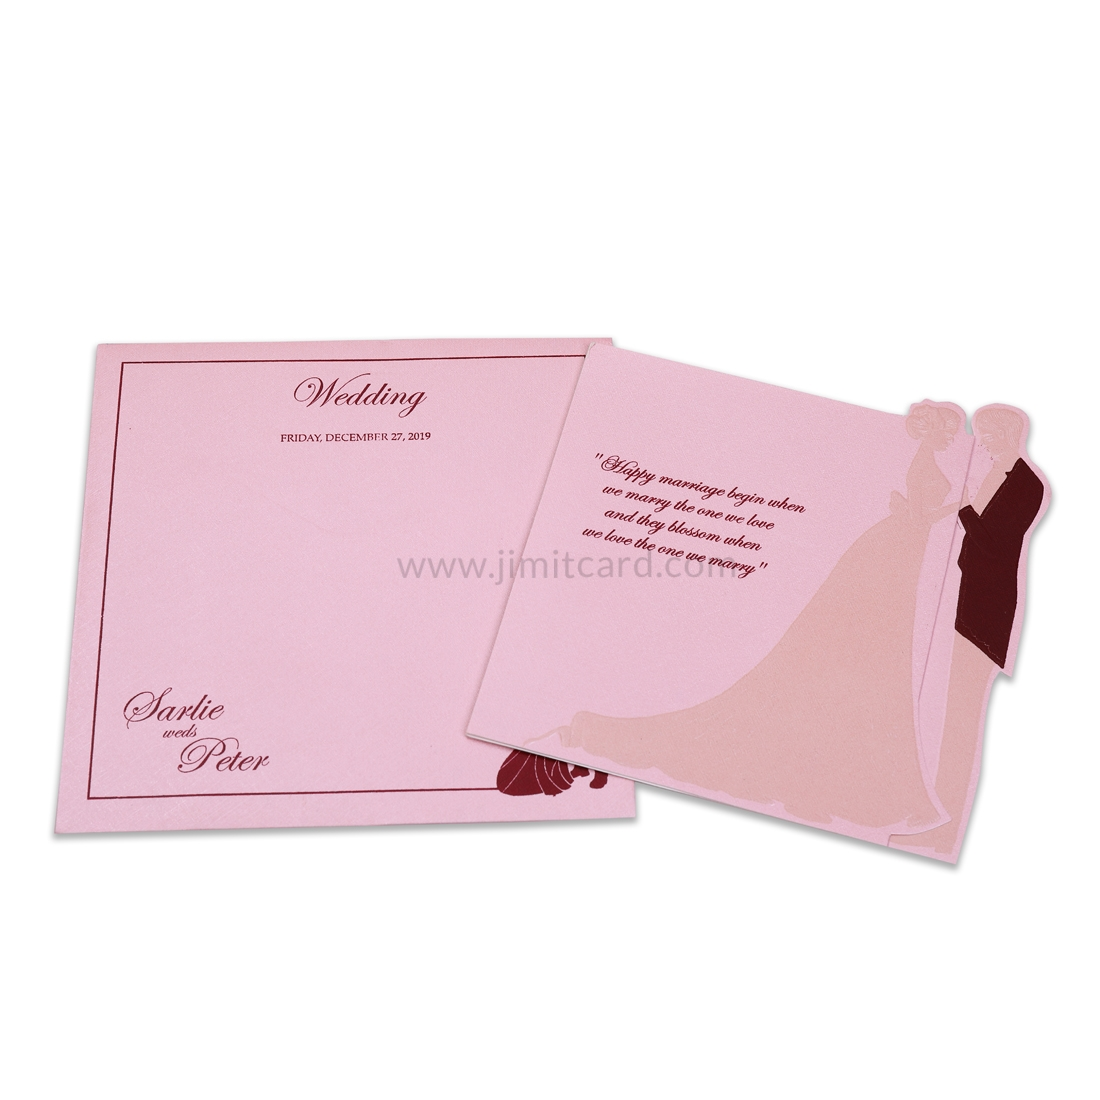 Pink Embedded Bride and Groom With Laser Cut Design Wearing Wedding Dress -0